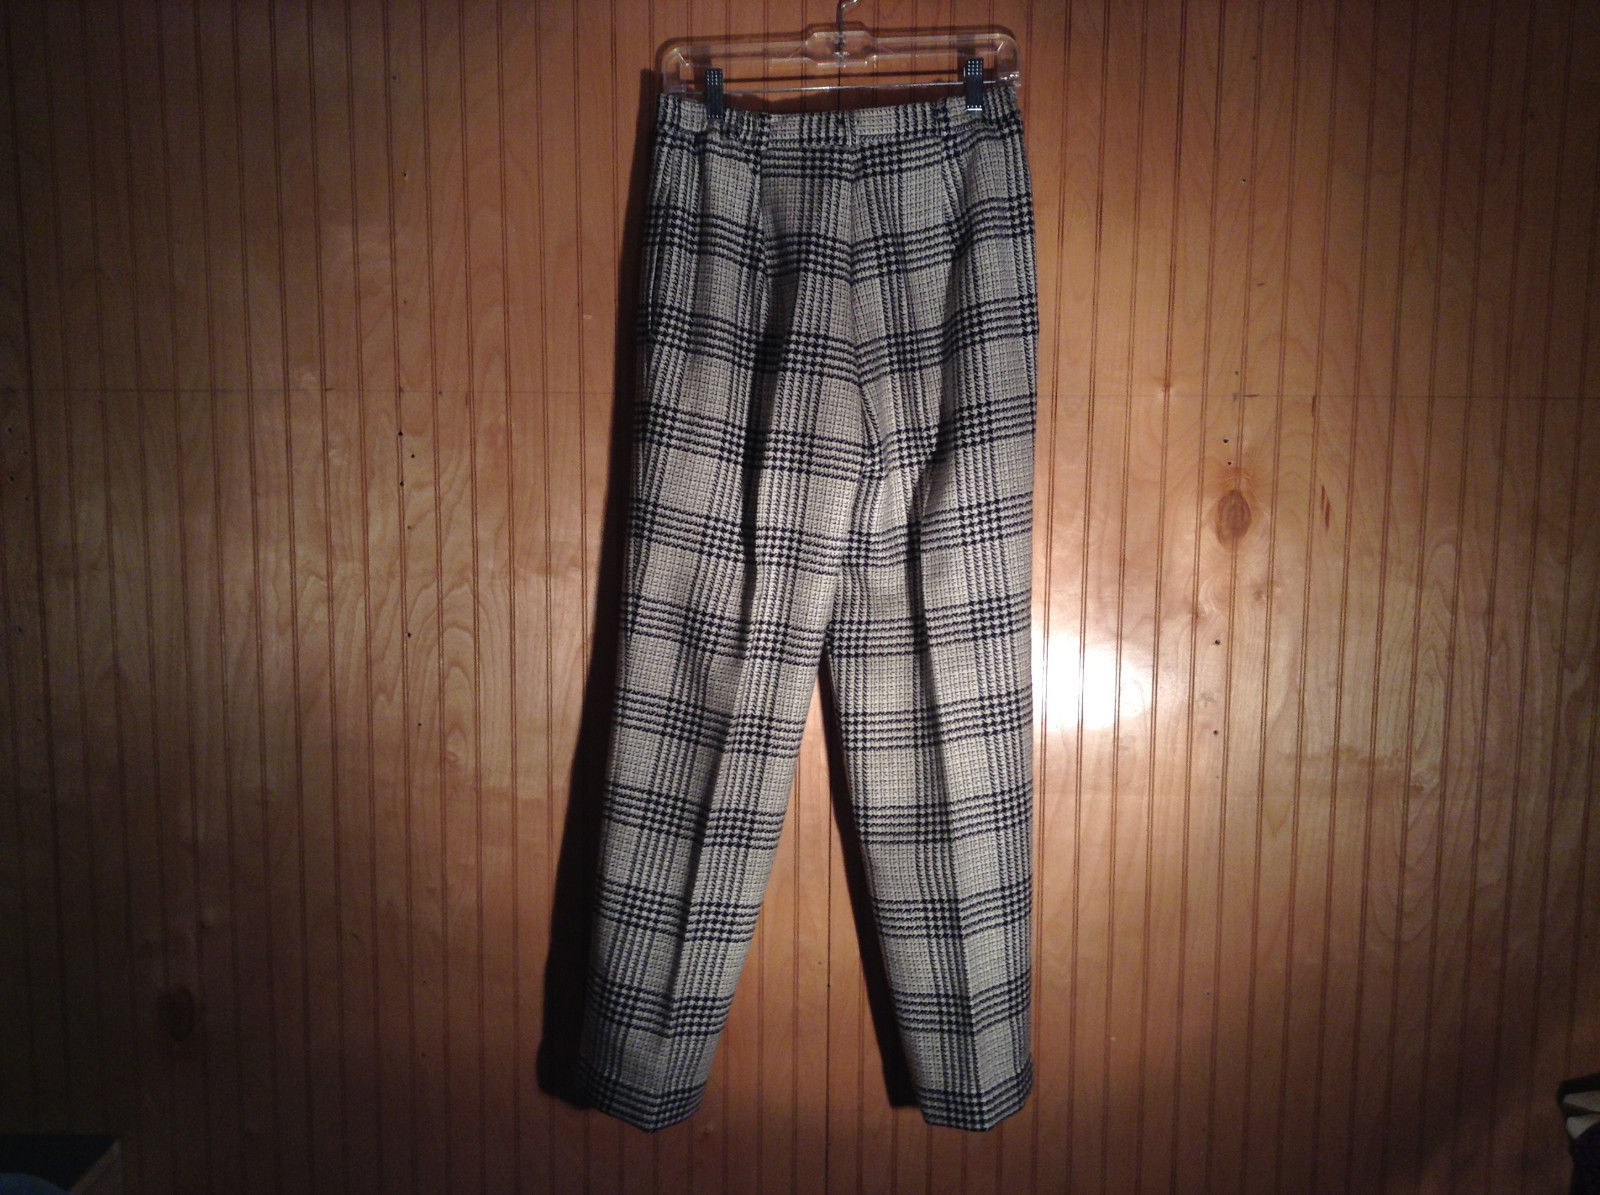 100 Percent Pure Wool Plaid Dress Pants by Cassandra Made in USA Size 12